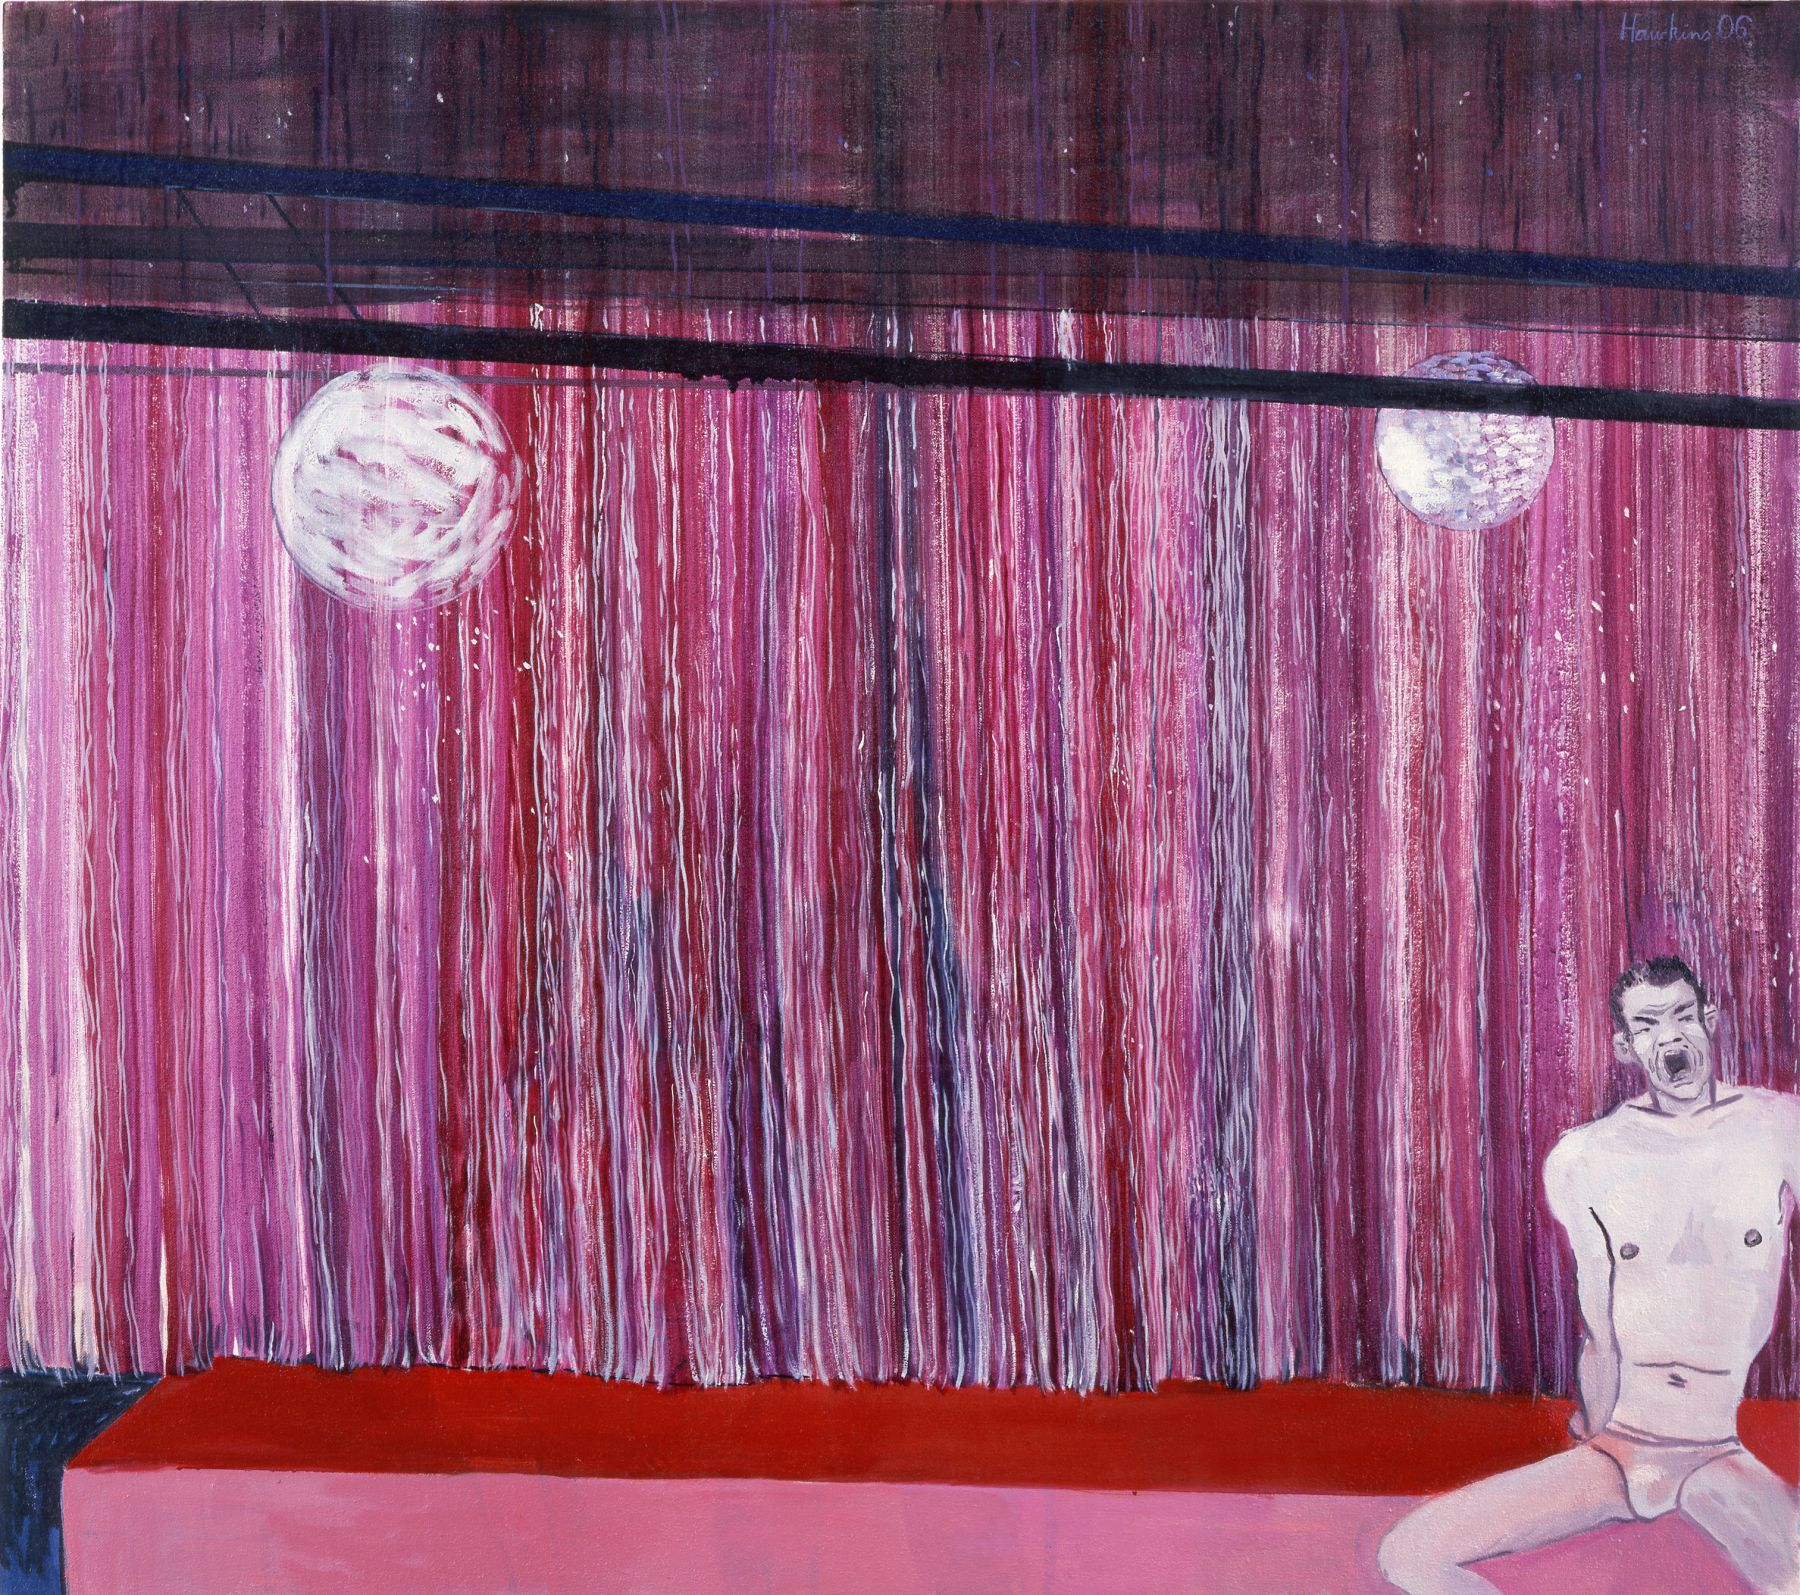 Purple Curtain, 2006, oil on linen, 37 x 42 inches